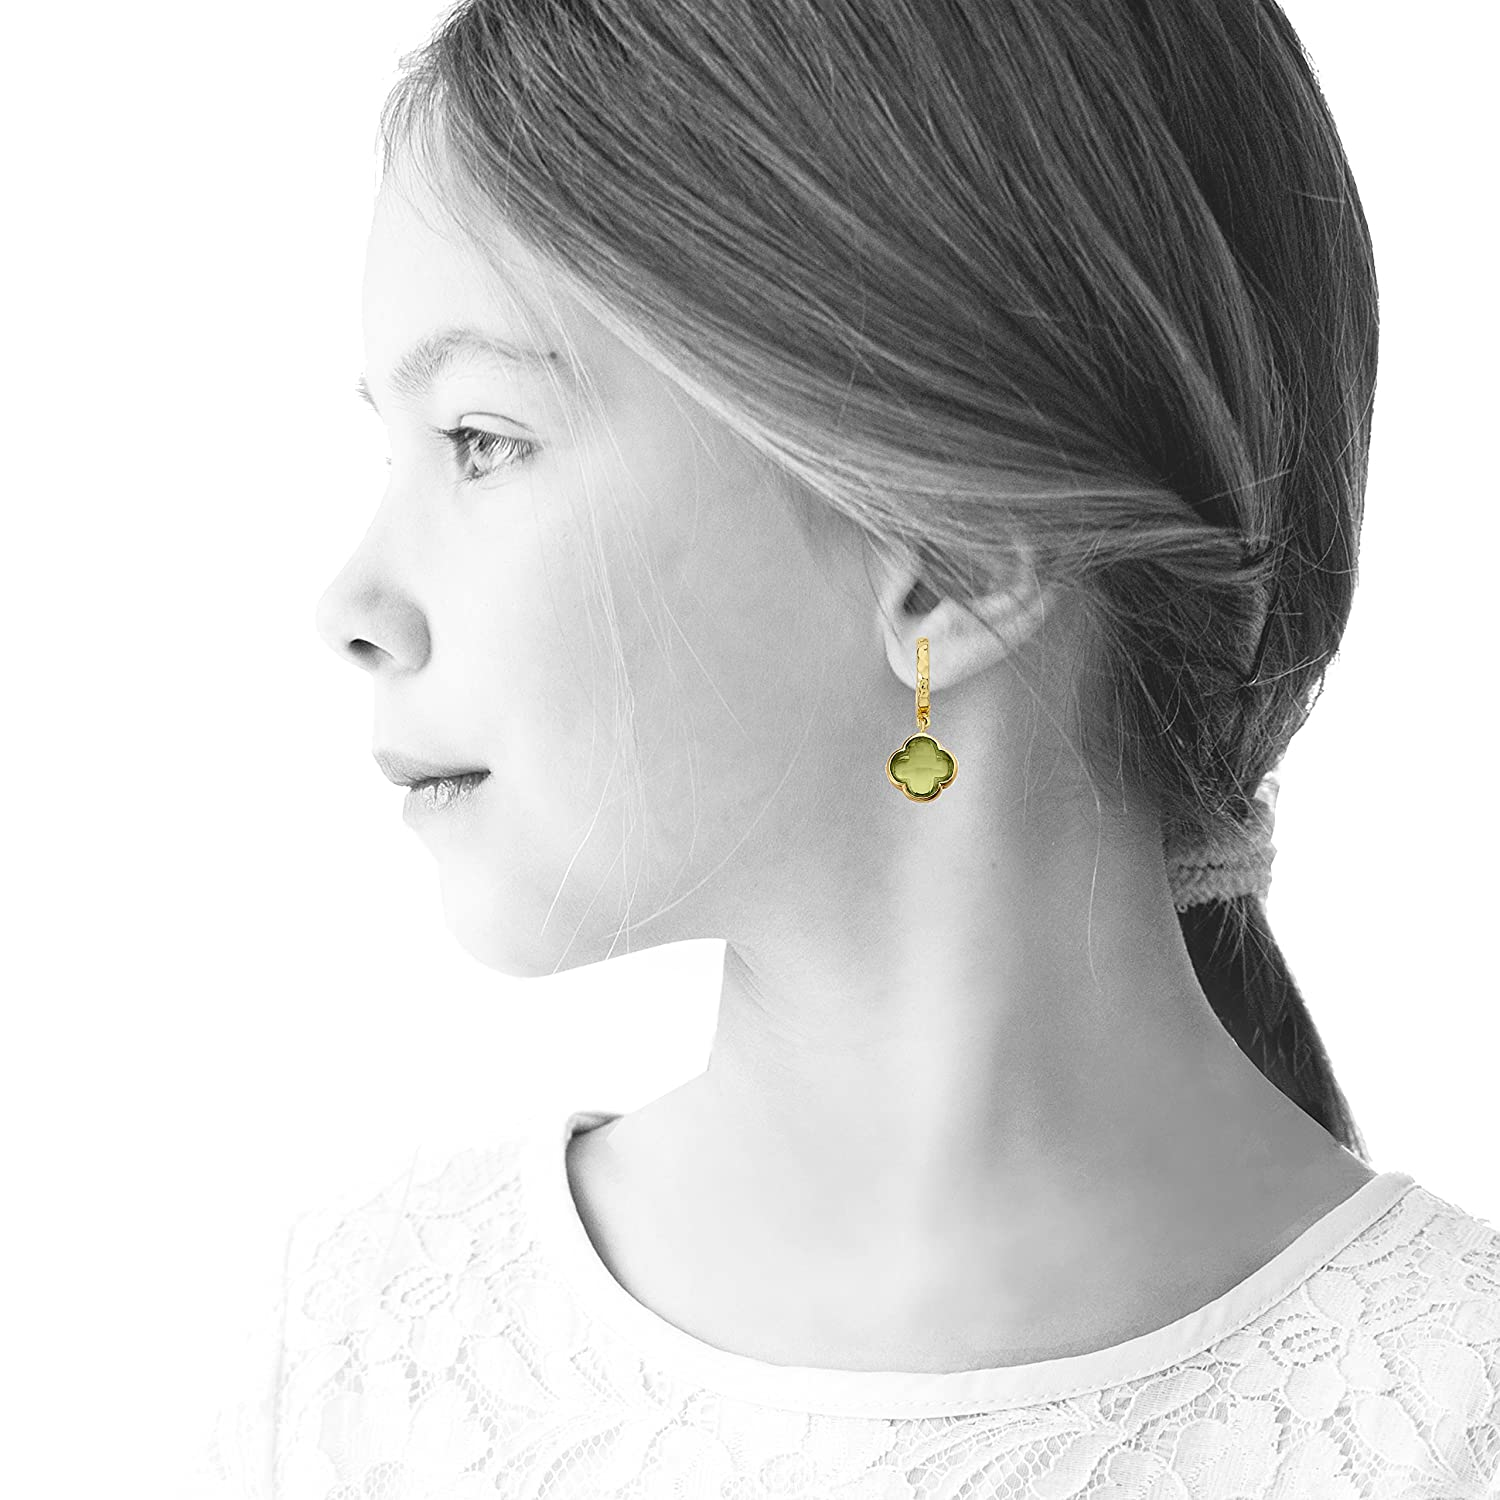 Hypoallergenic and Nickel Free For Sensitive Ears Little Miss Twin Stars Hammered 14k Gold-Plated Huggy Earring With Faceted Clover Dangle